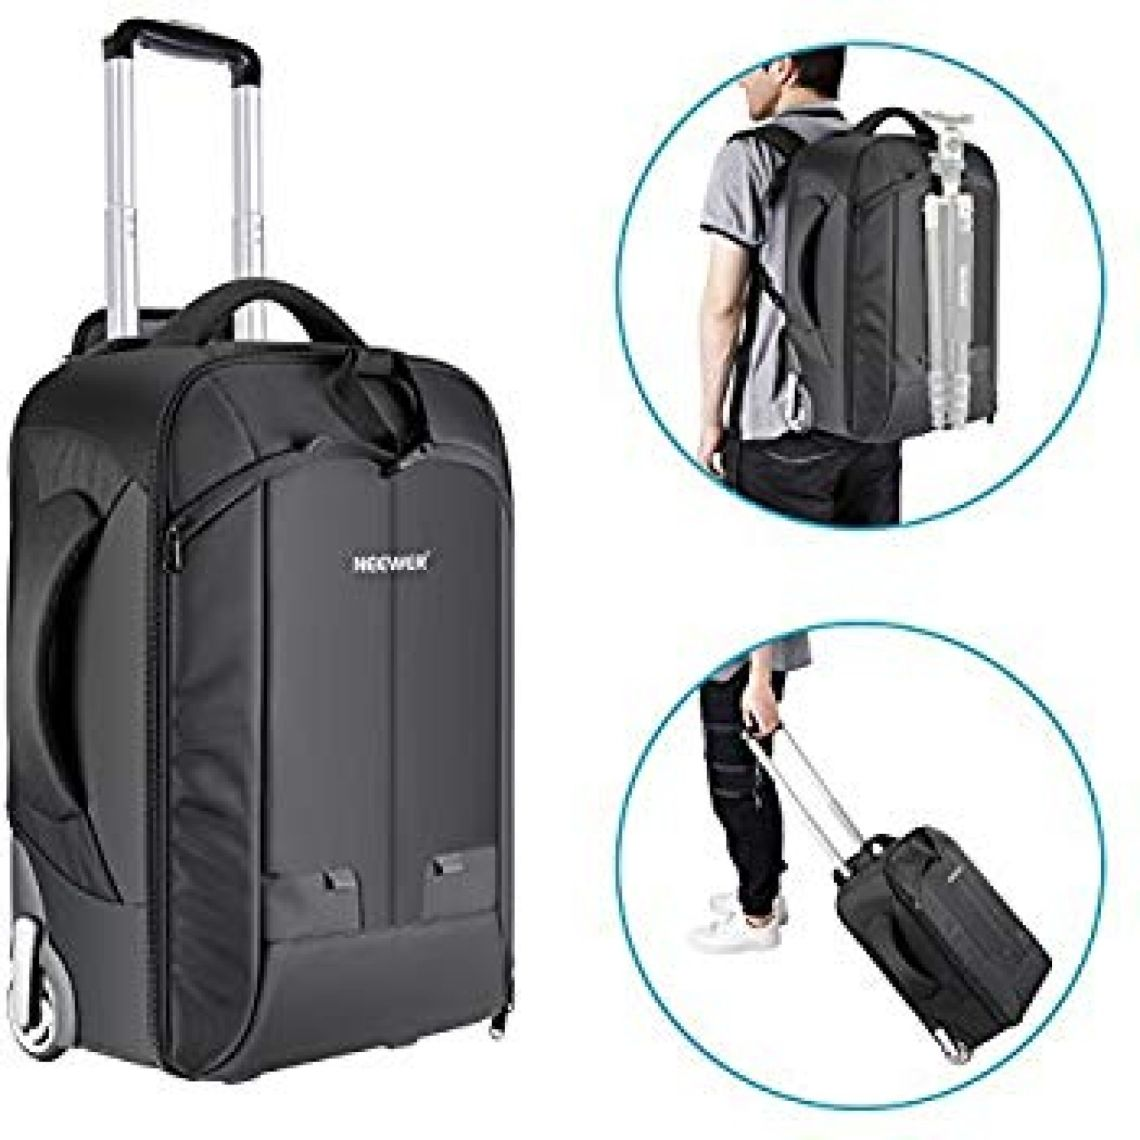 Amazon.com: Neewer 2-in-1 Convertible Wheeled Camera Backpack Luggage Trolley Case with Double Bar, Anti-shock Detachable Padded Compartment for SLR/DSLR Cameras, Tripod, Lens and Other Accessories (Black/Green): Electronics